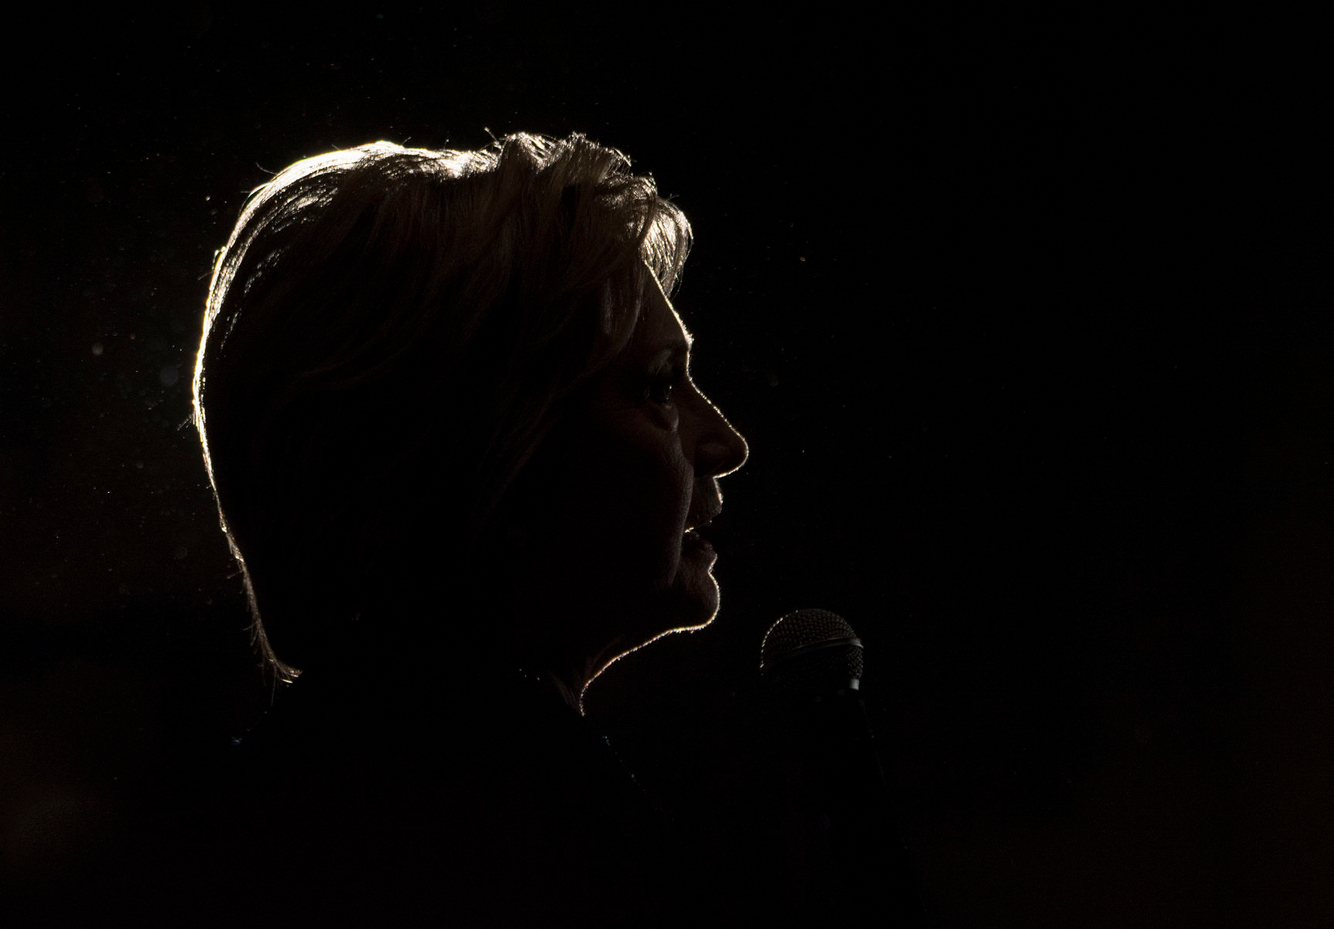 Hillary Clinton is silhouetted during a campaign event in Las Vegas.